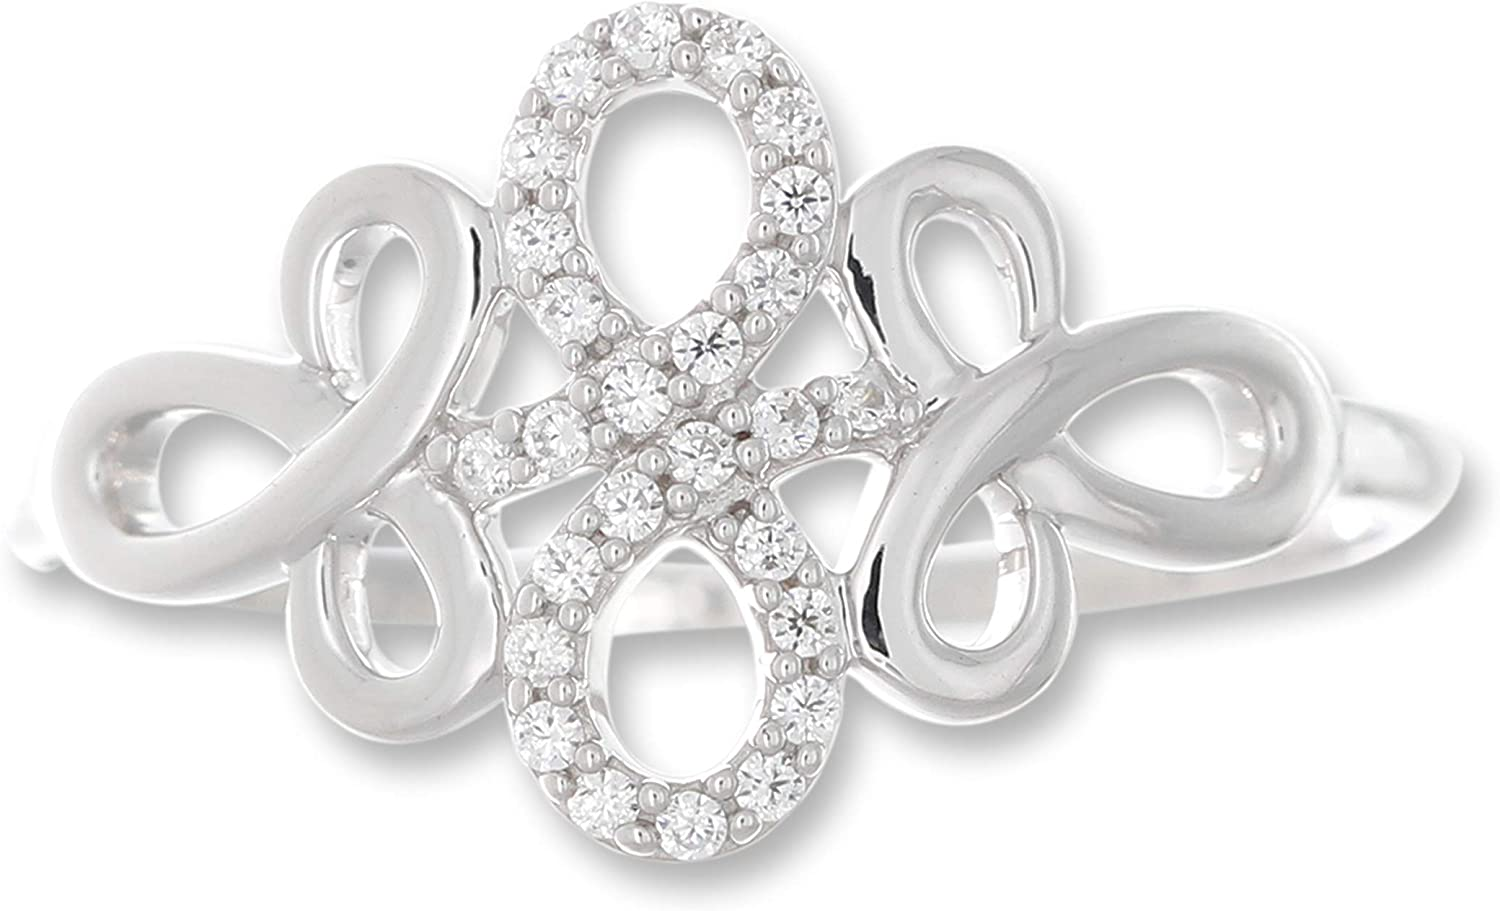 1//10 Cttw Diamond Floral Knot Ring in 10K White Gold